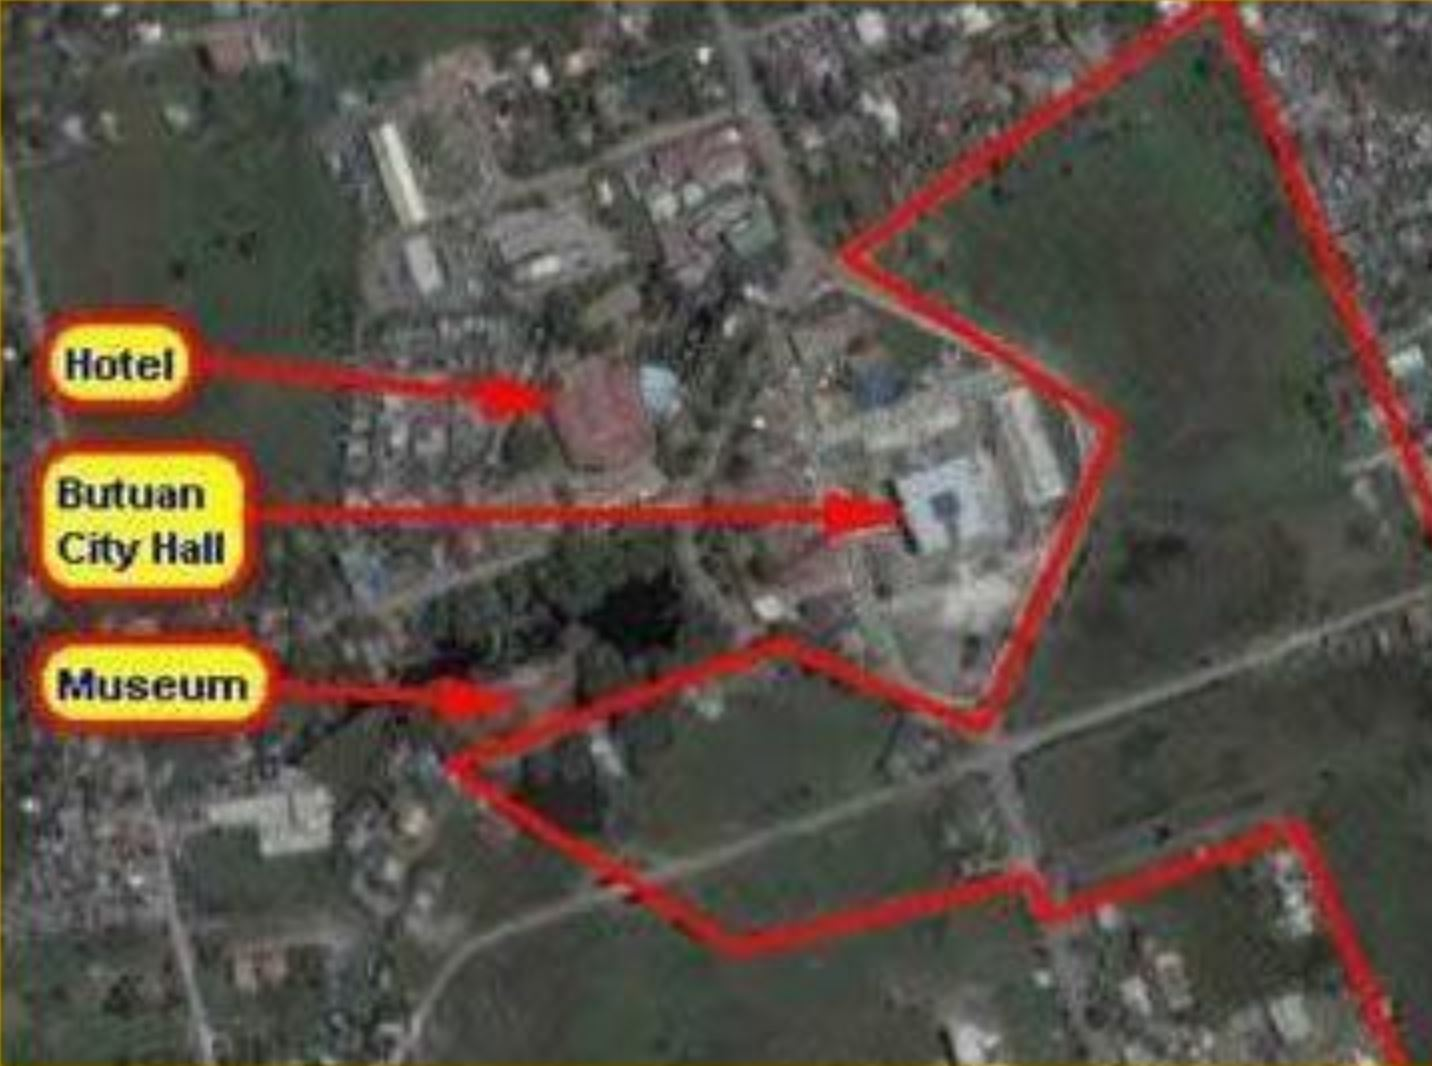 Premium Real Estate lots (land), Butuan City, Philippines